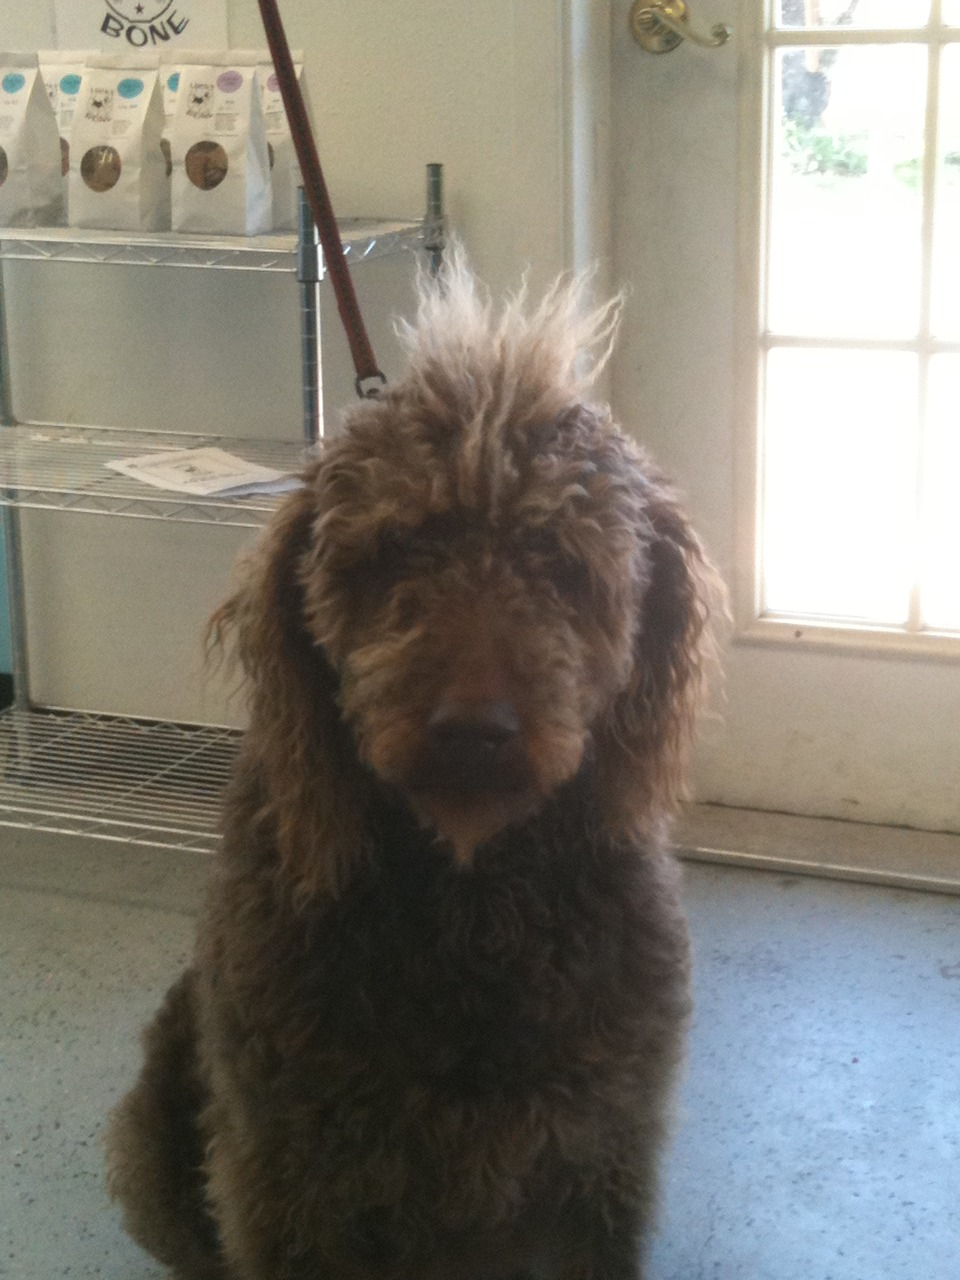 Check out Brickly's mohawk. Reminds me of a Dr. Seuss character :)